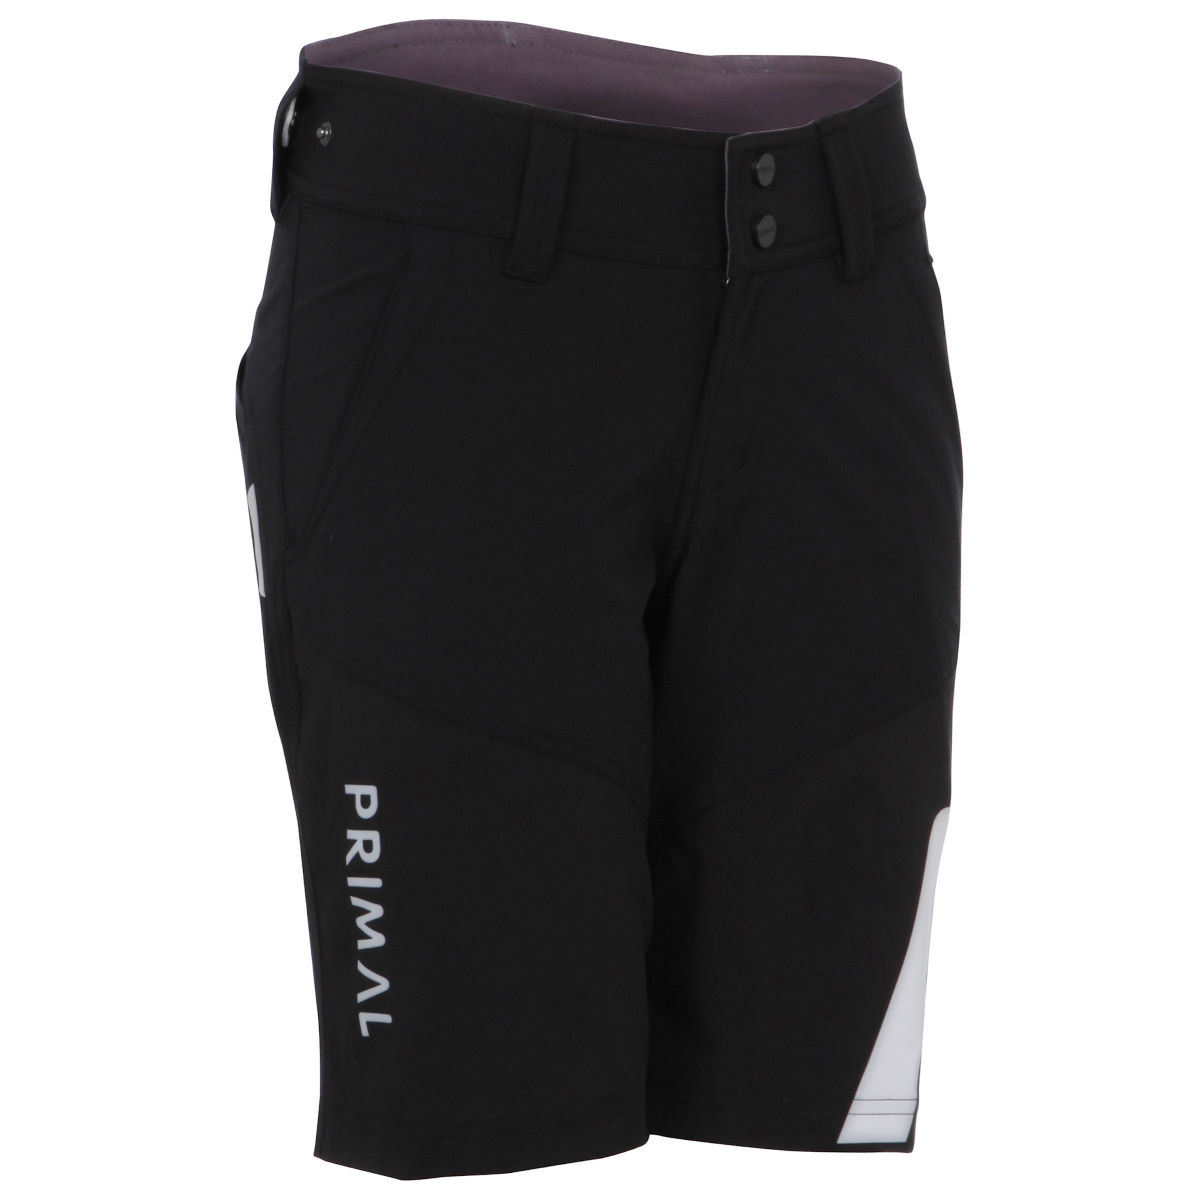 Short Femme Primal Onyx Escade (coupe ample) - M Noir Shorts VTT